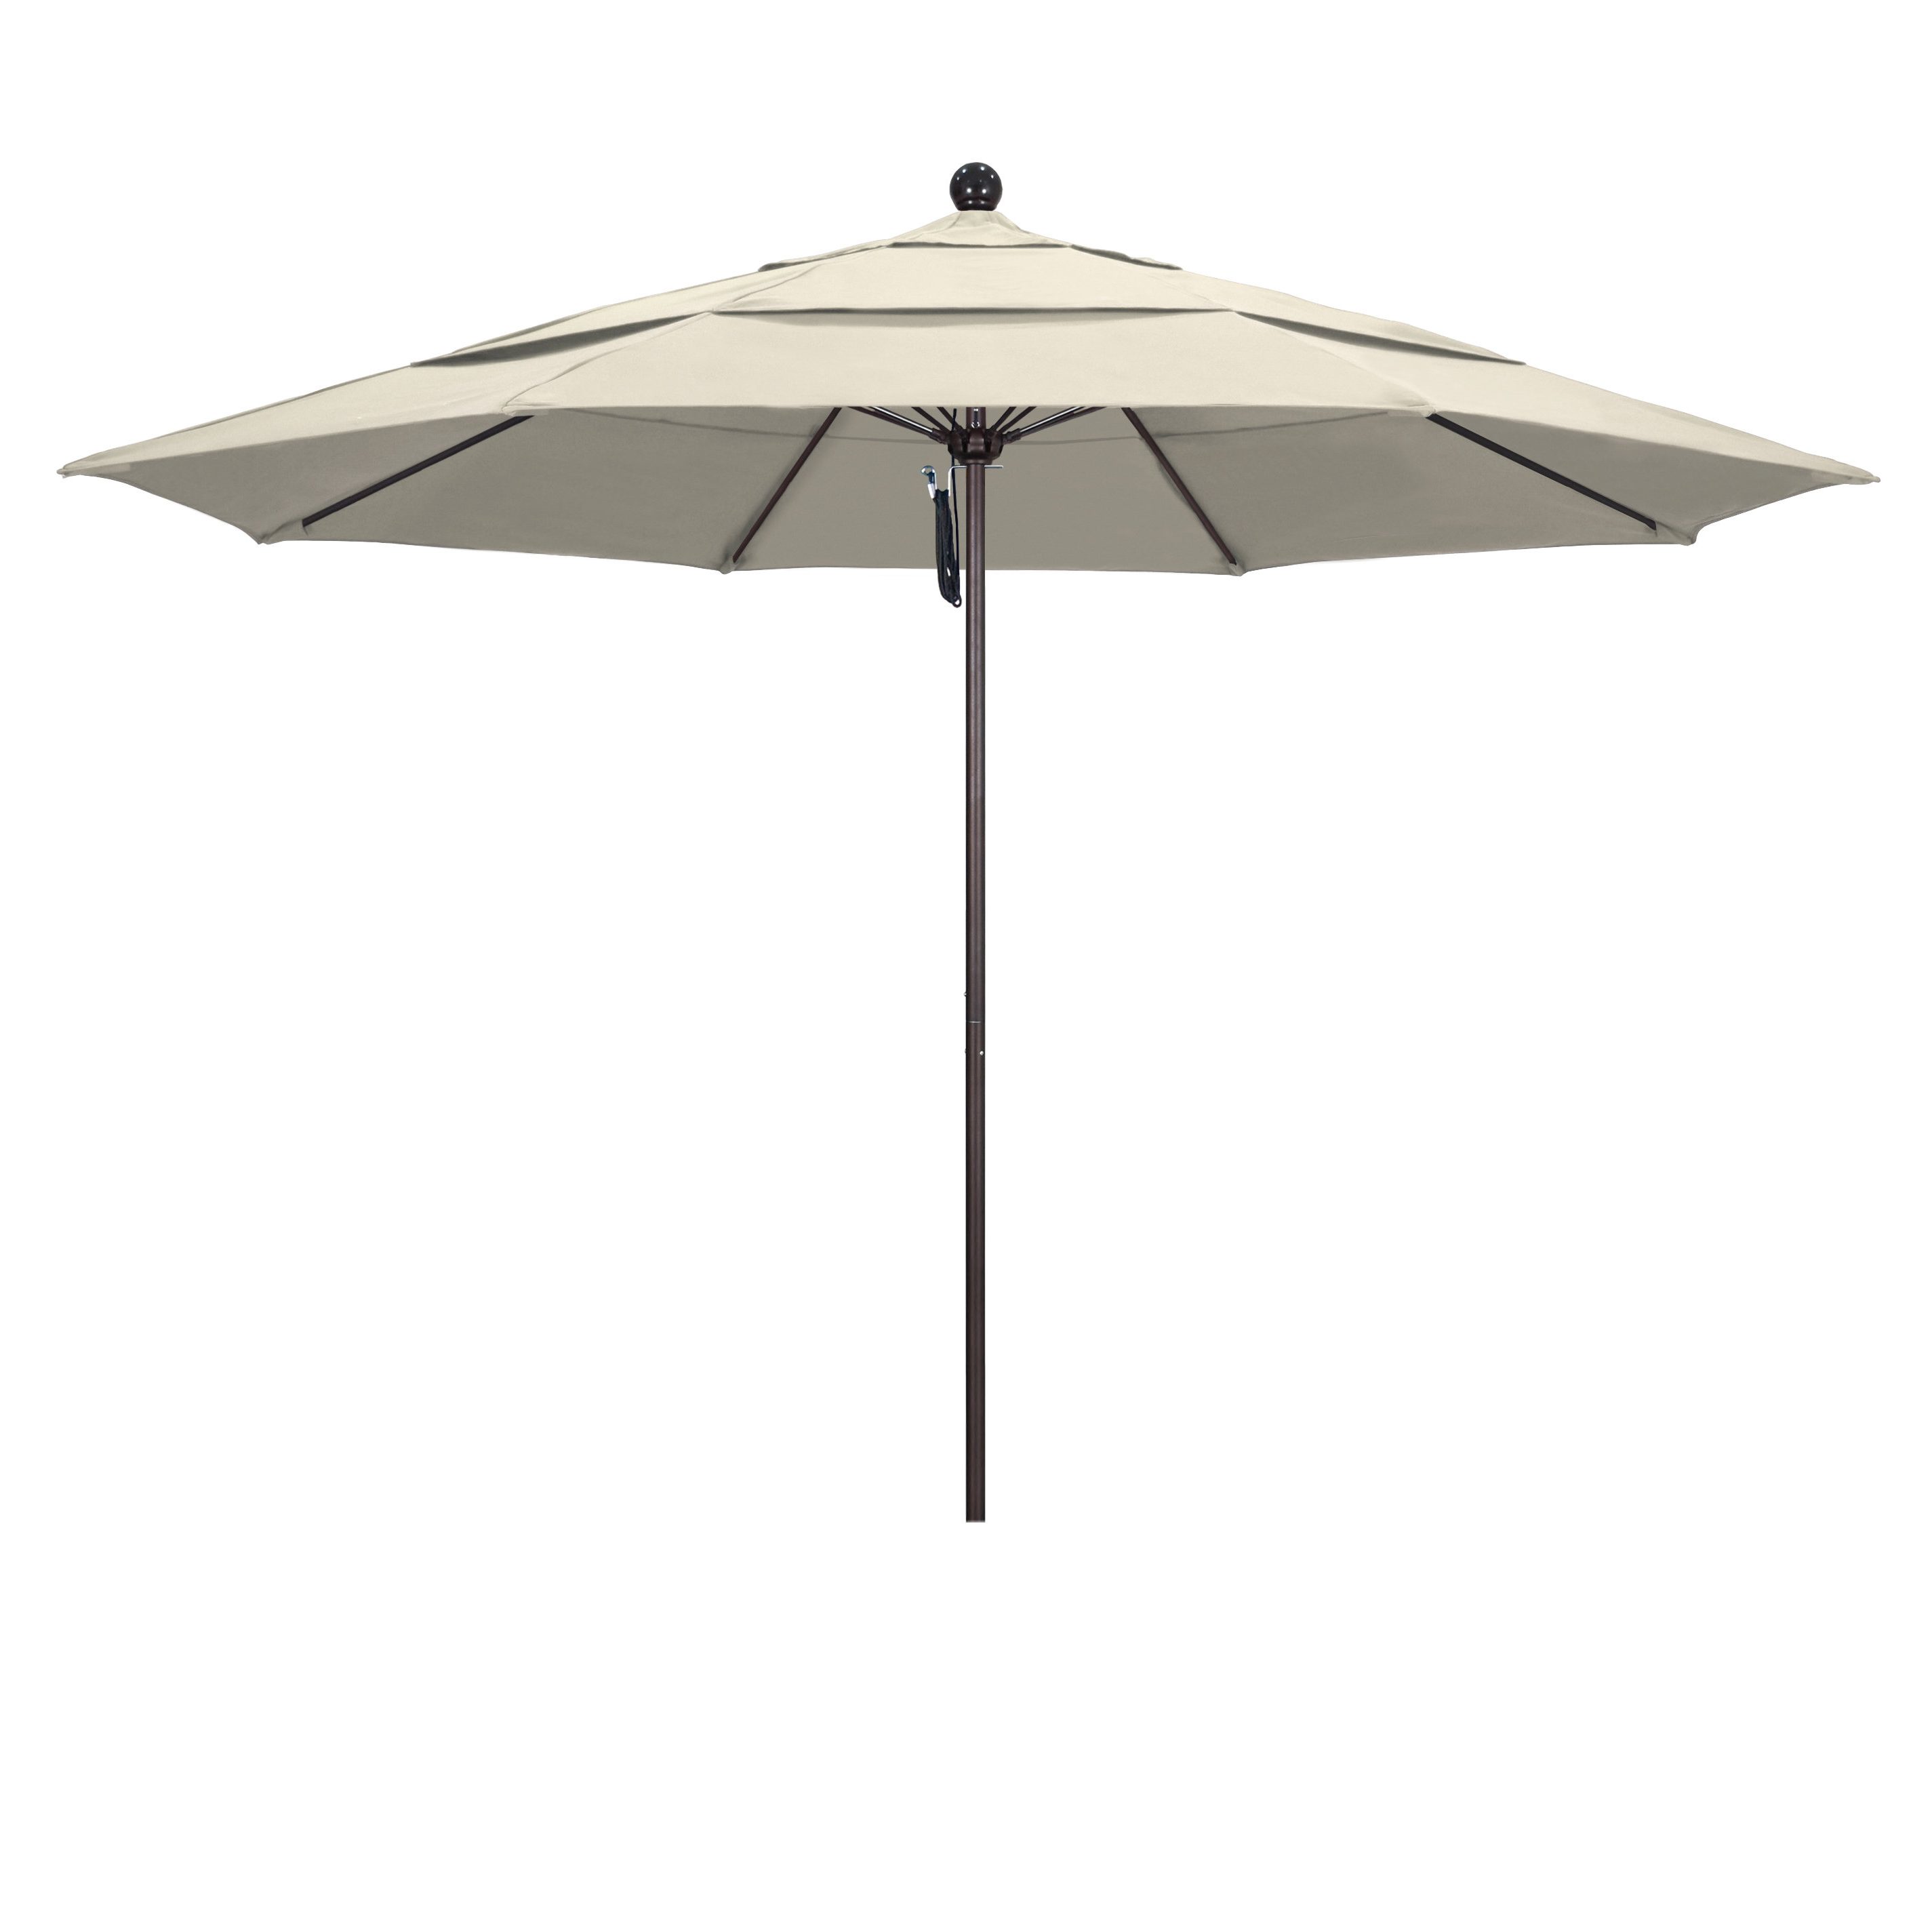 Mucci Madilyn Market Sunbrella Umbrellas With Fashionable Sol 72 Outdoor Duxbury 11' Market Umbrella (View 18 of 20)